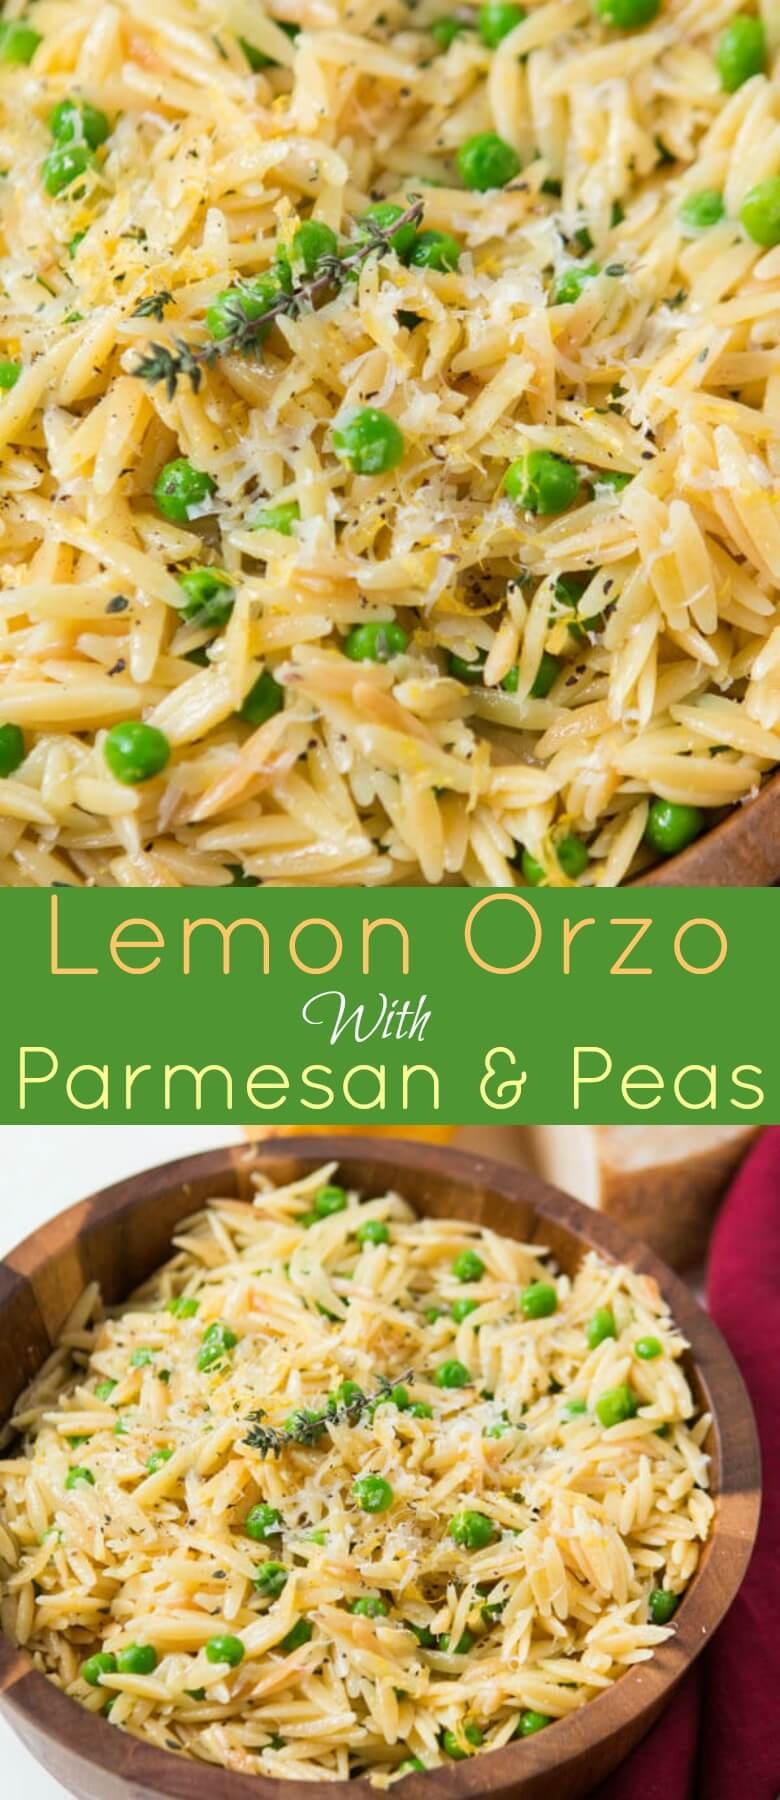 photo collage - Delicious lemon orzo with parmesan and peas in a wooden bowl.